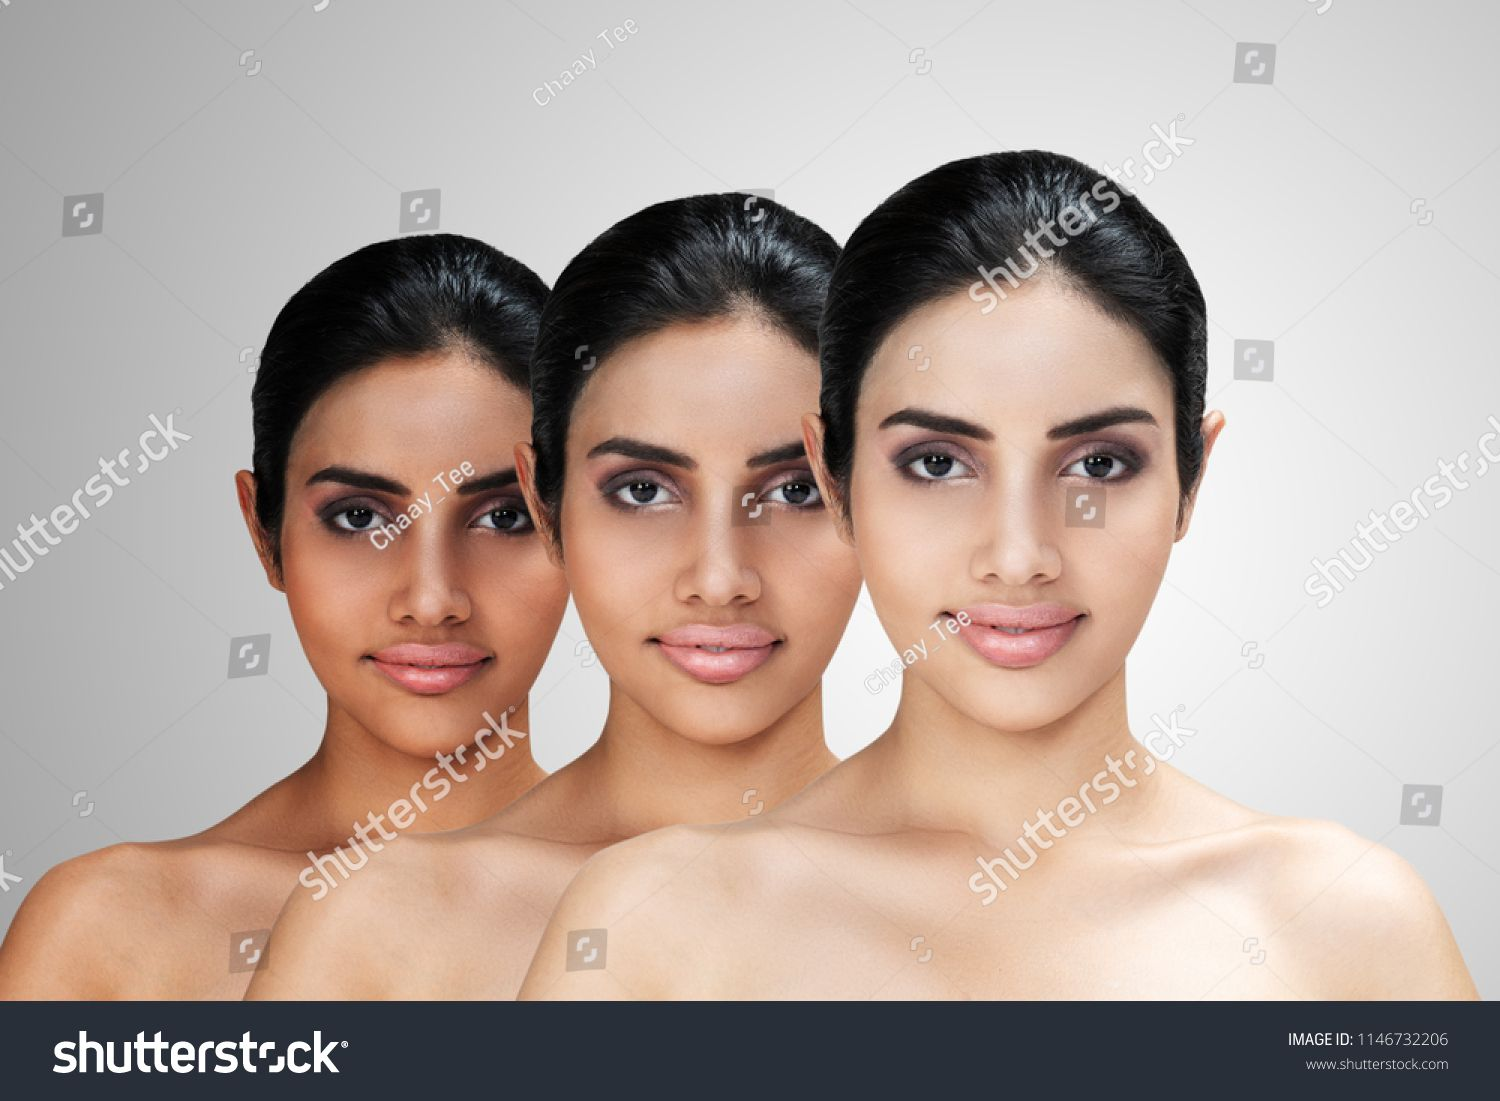 Young Asian attractive woman with skin brightening or facial rejuvenation  concept. Face whitening after treatment compare before - after and  lightening ...